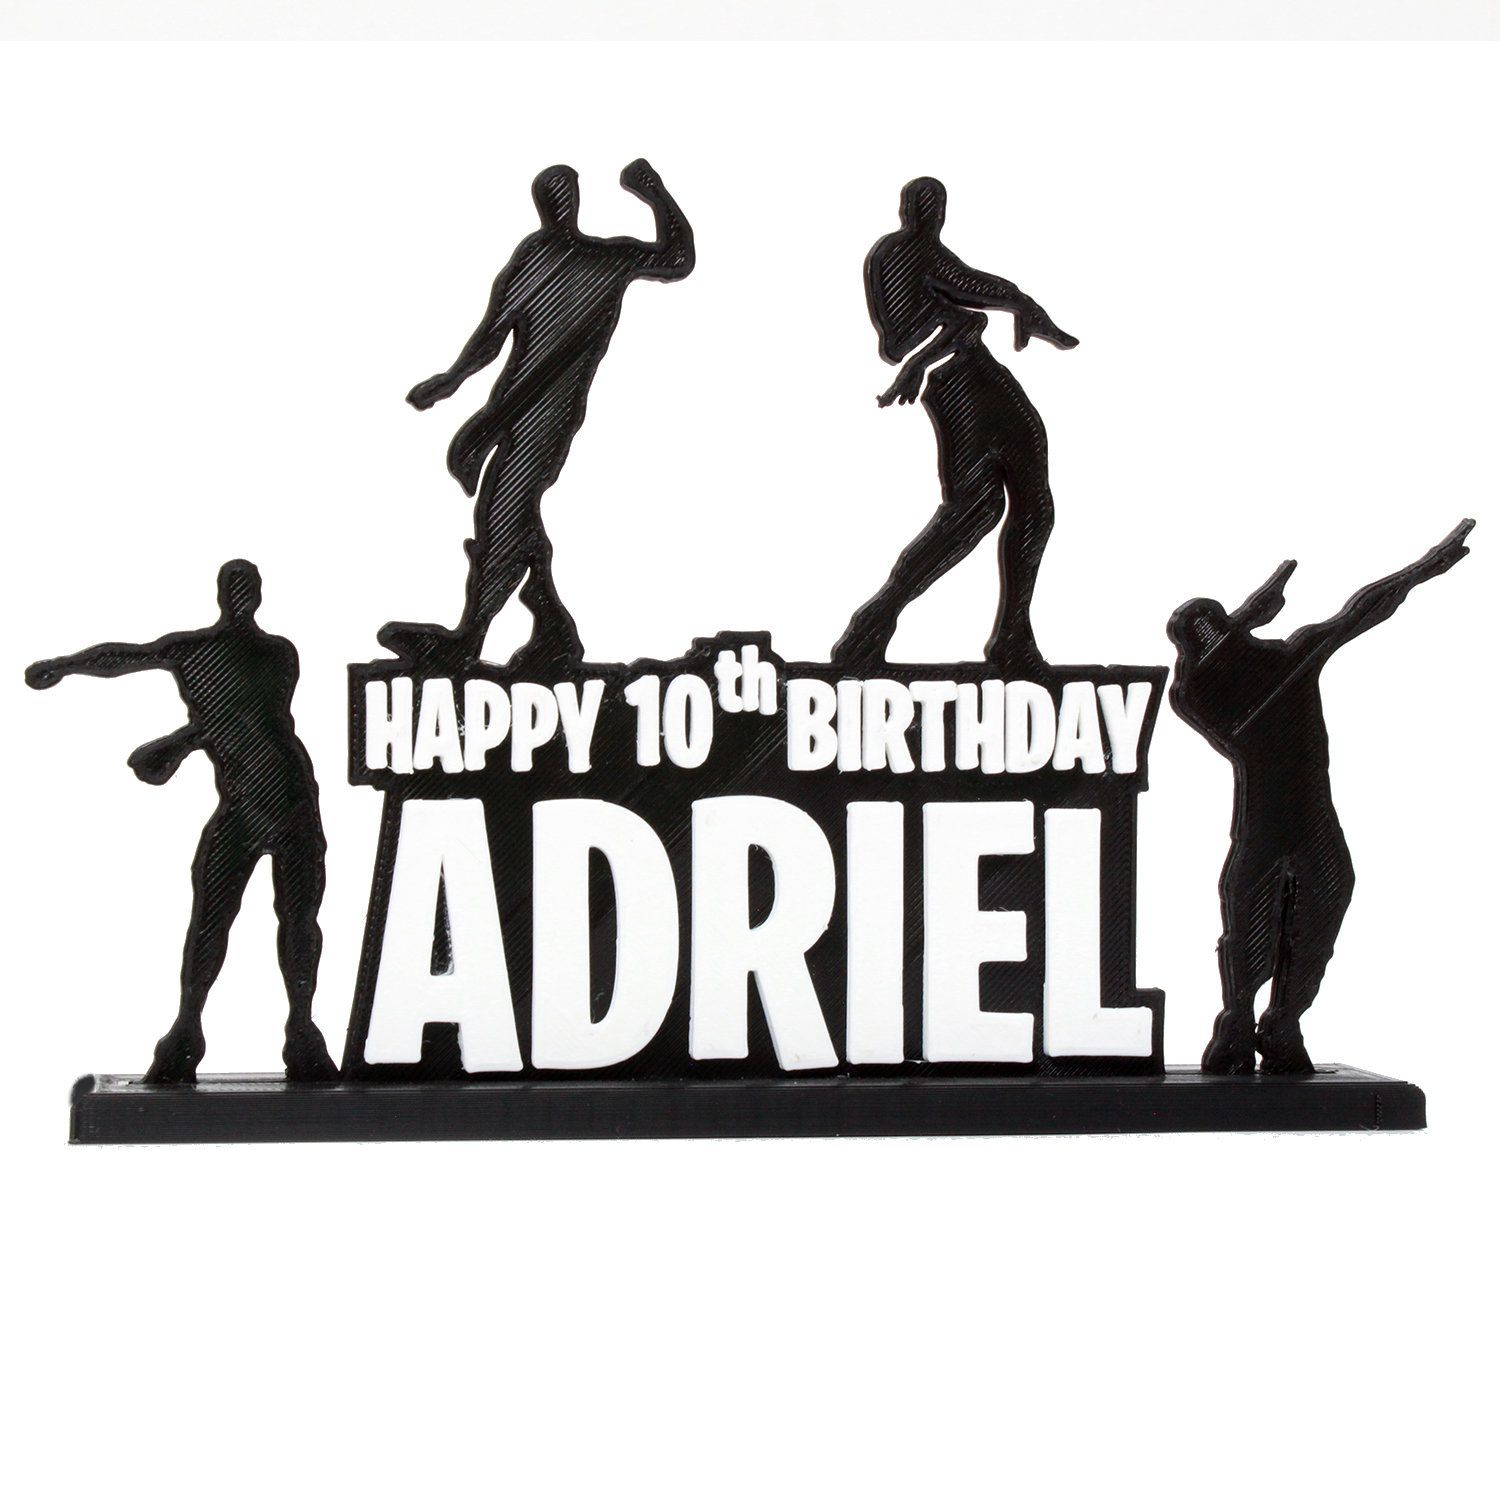 Custom Floss Dab Hype Orange Justice Happy Birthday Video Game Cake Topper With Personalized Name And Age Happy Birthday Video Video Game Cakes Birthday Gif